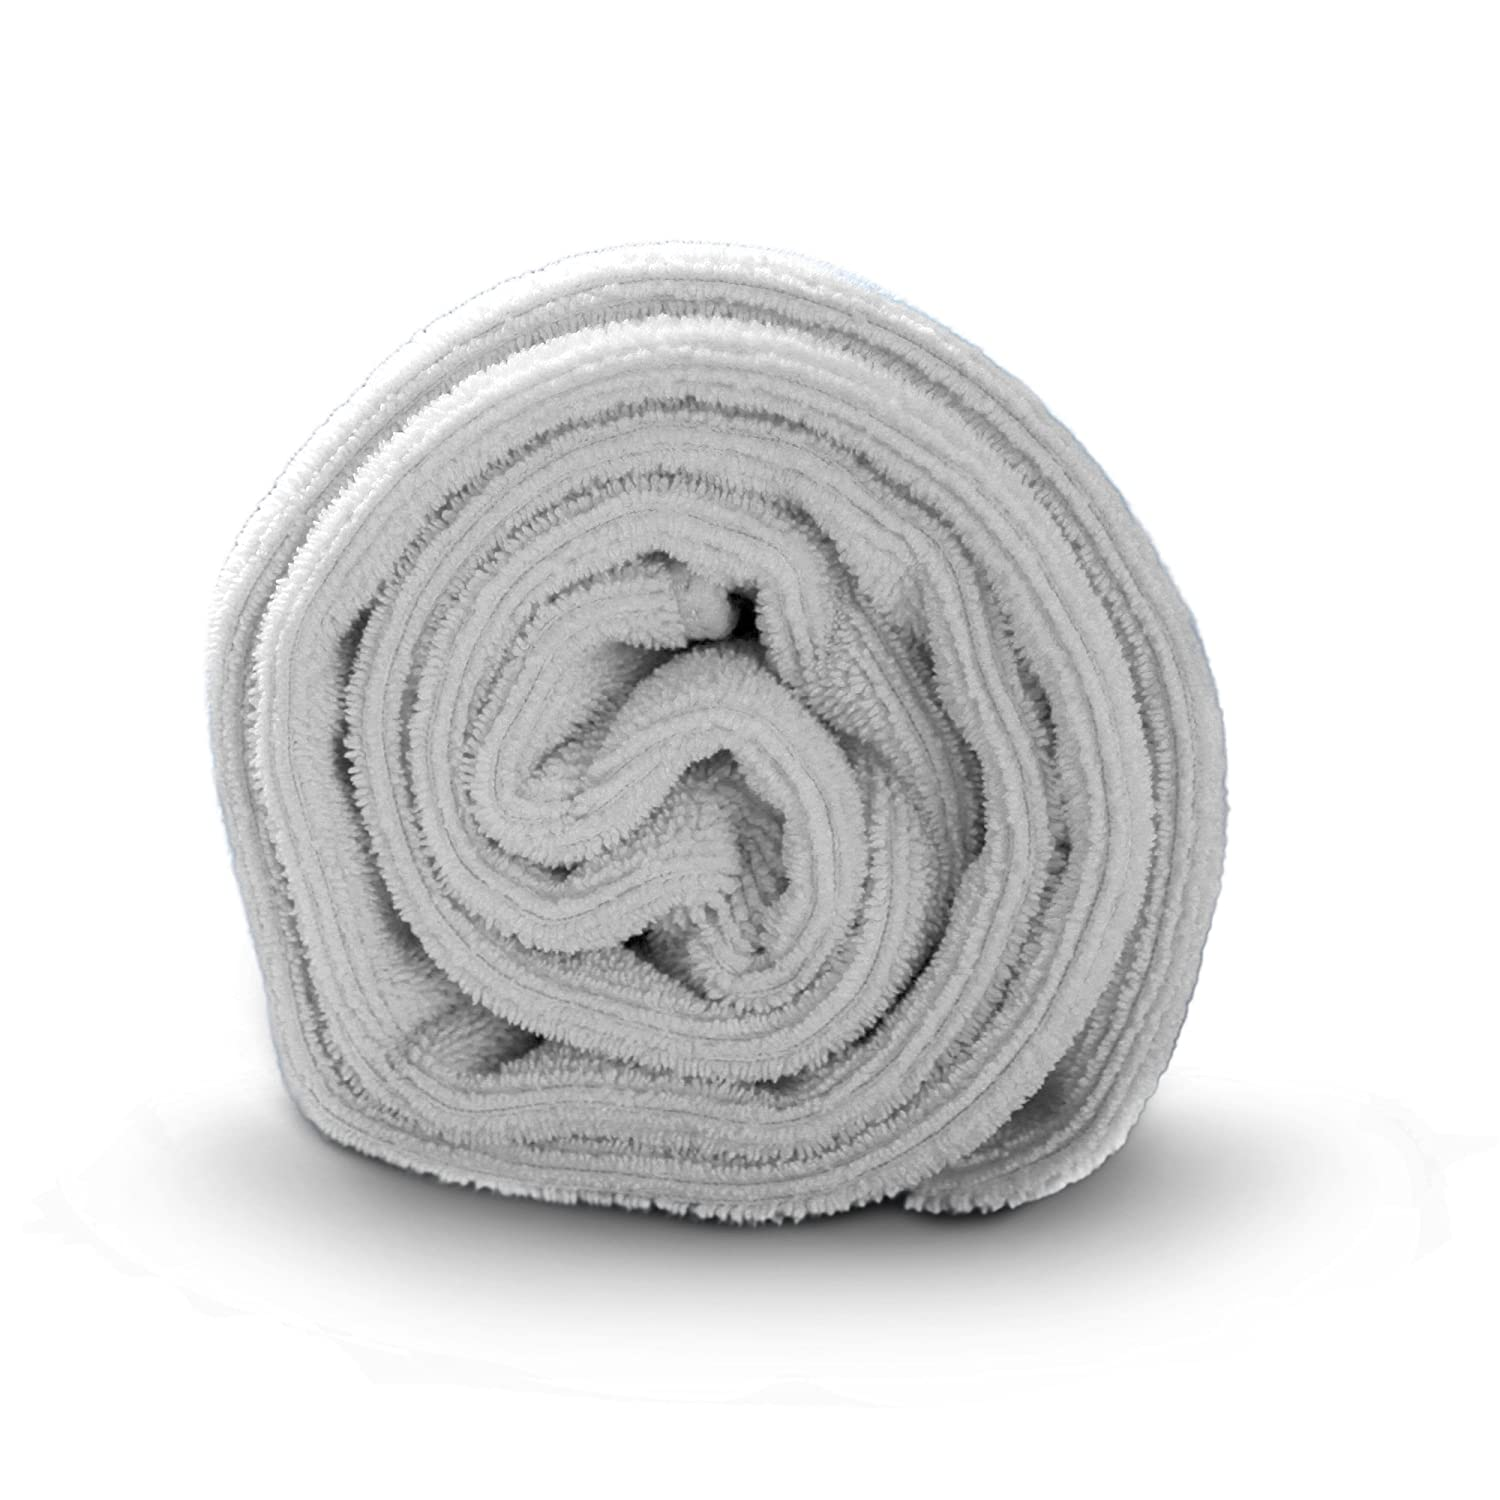 Luxe Beauty Essentials Microfiber Hair Towel for Drying Curly, Long & Thick Hair- Large 20 x 40 Grey : Beauty